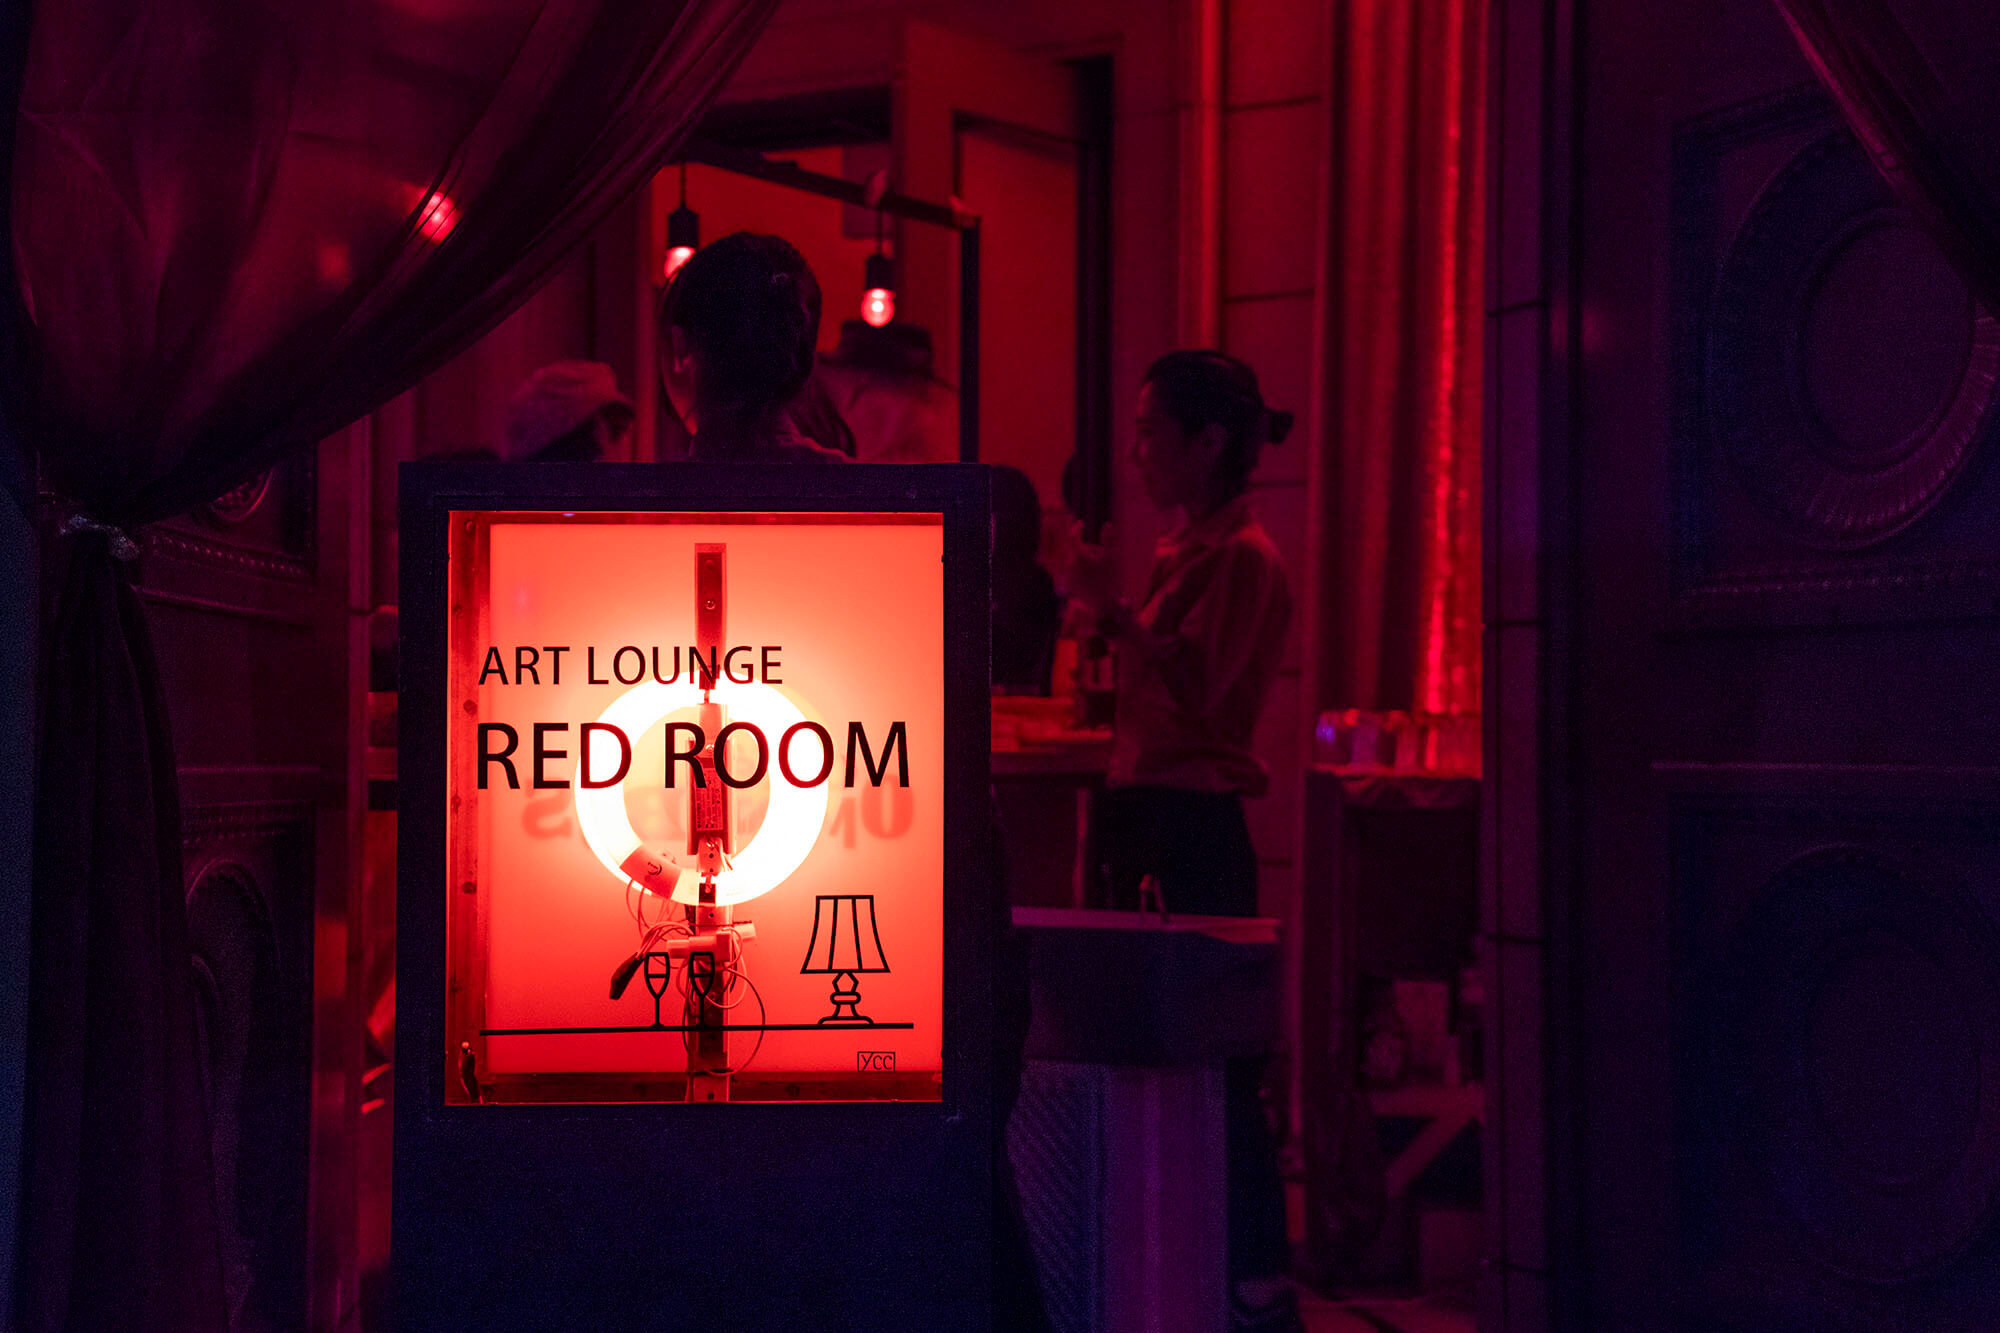 RED ROOM #4|offsociety inc. Red Room #4 Yokohama 現代美術・アート Contemporary Art